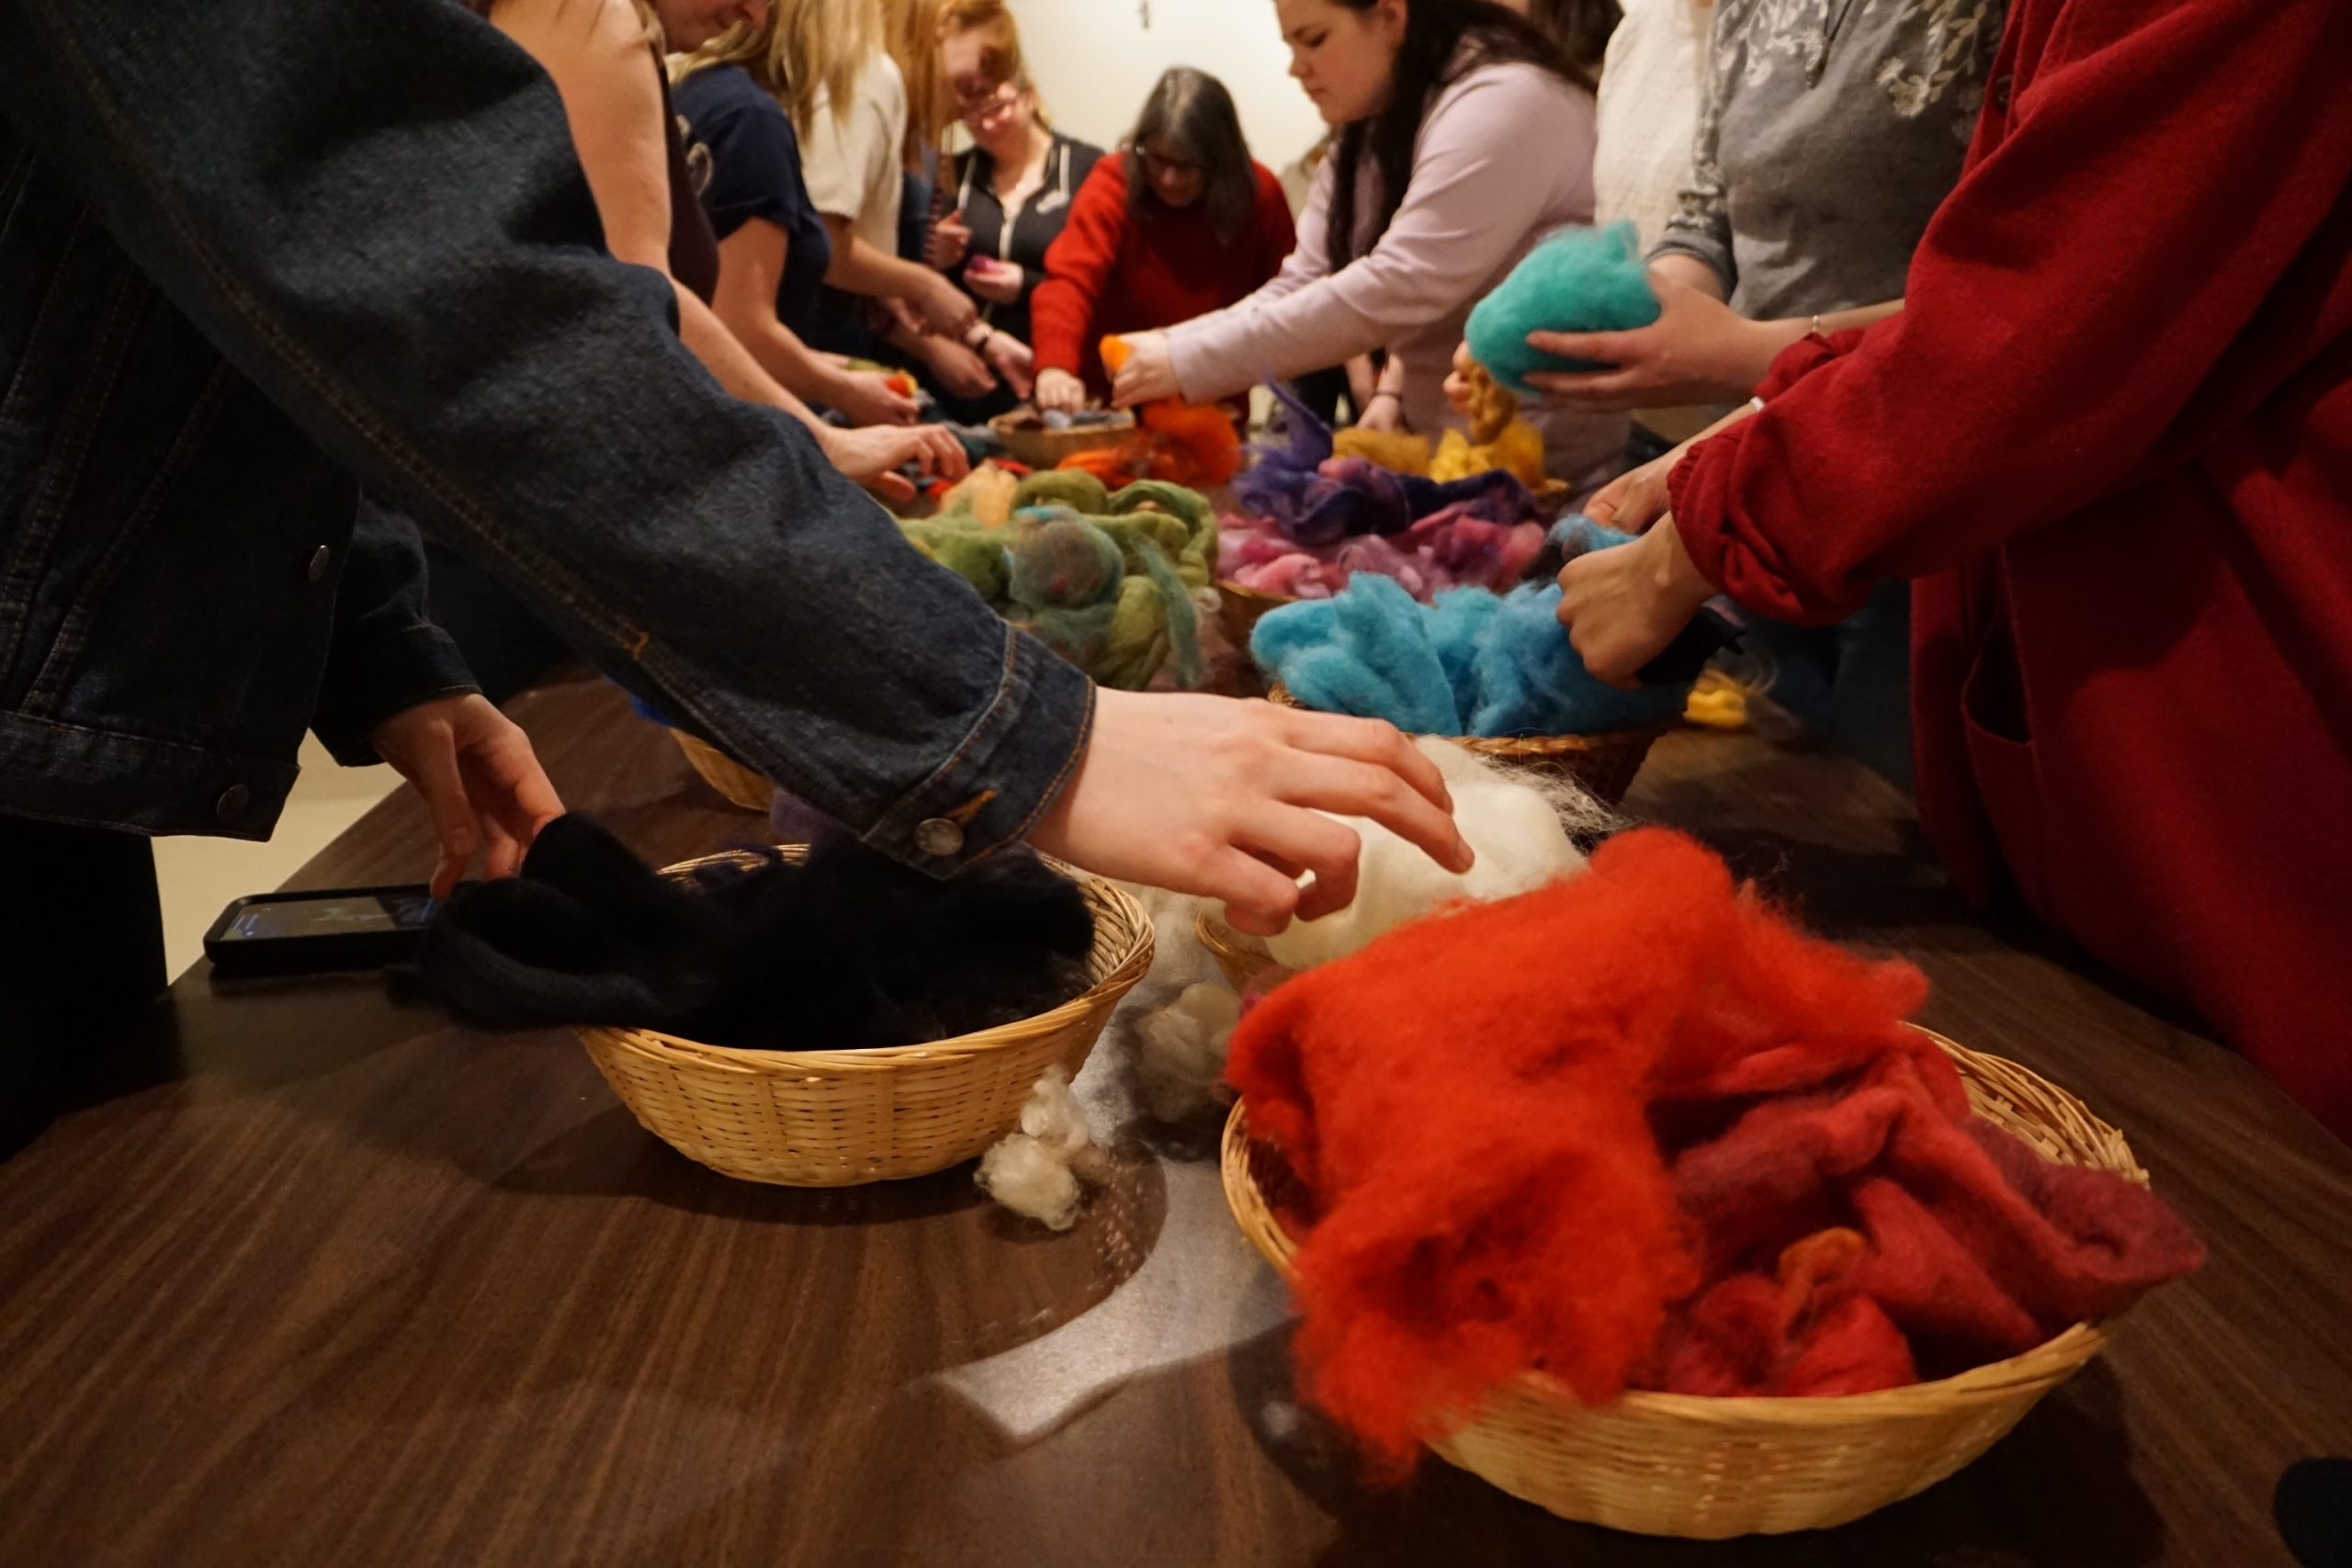 People crowd around a long table, reaching out to select colours from overflowing baskets of soft wool roving.